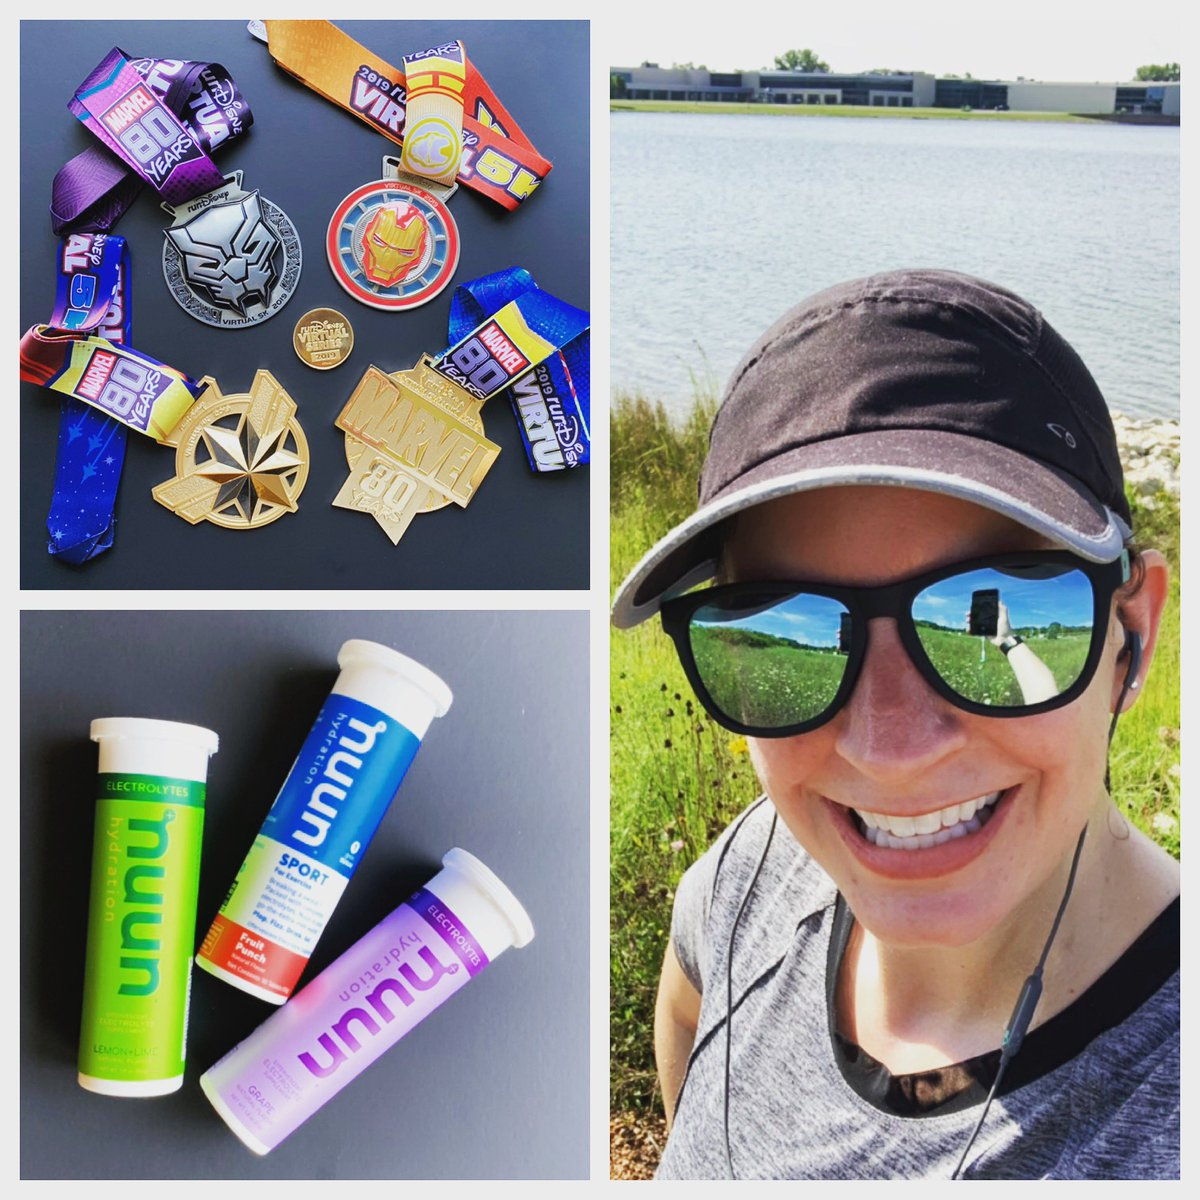 Ran my final 5k for the @runDisney #virtualshorts this morning!  These Marvel medals are absolutely amazing!!  And of course my @nuunhydration kept me hydrated as always.  Up next... who knows?!#nuunlove #nuunlife #nuunbassador #nuunbassador2019 #WIrunning #rundisney #marvel<br>http://pic.twitter.com/qoWTJKsA9d